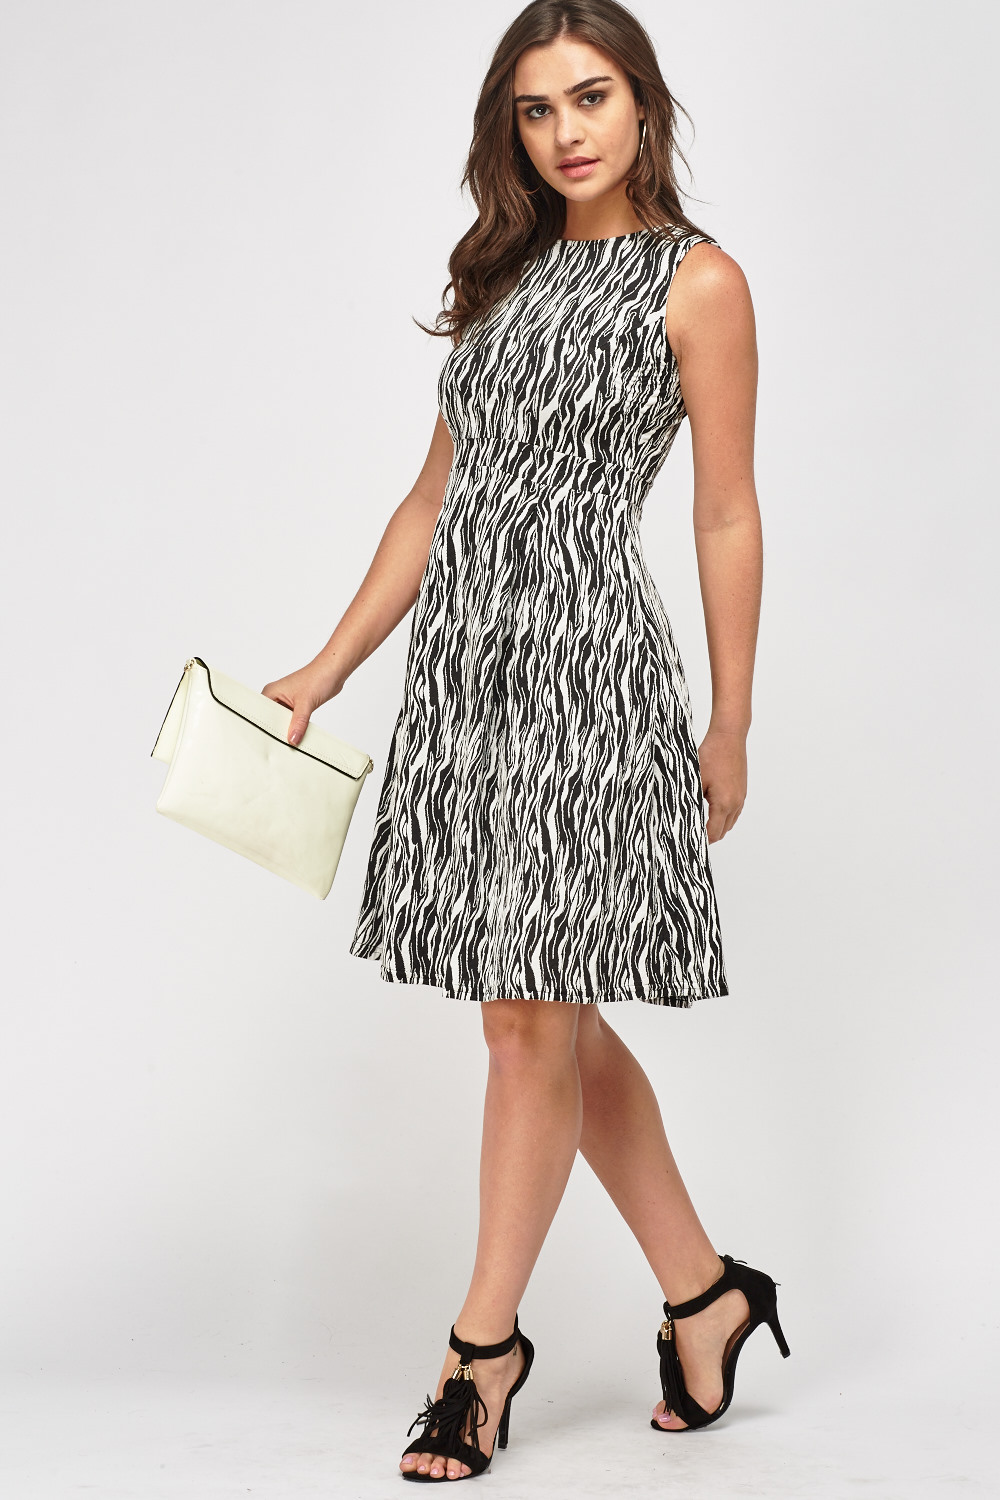 756c7a9c42 Textured Mono Printed Skater Dress - Just £5